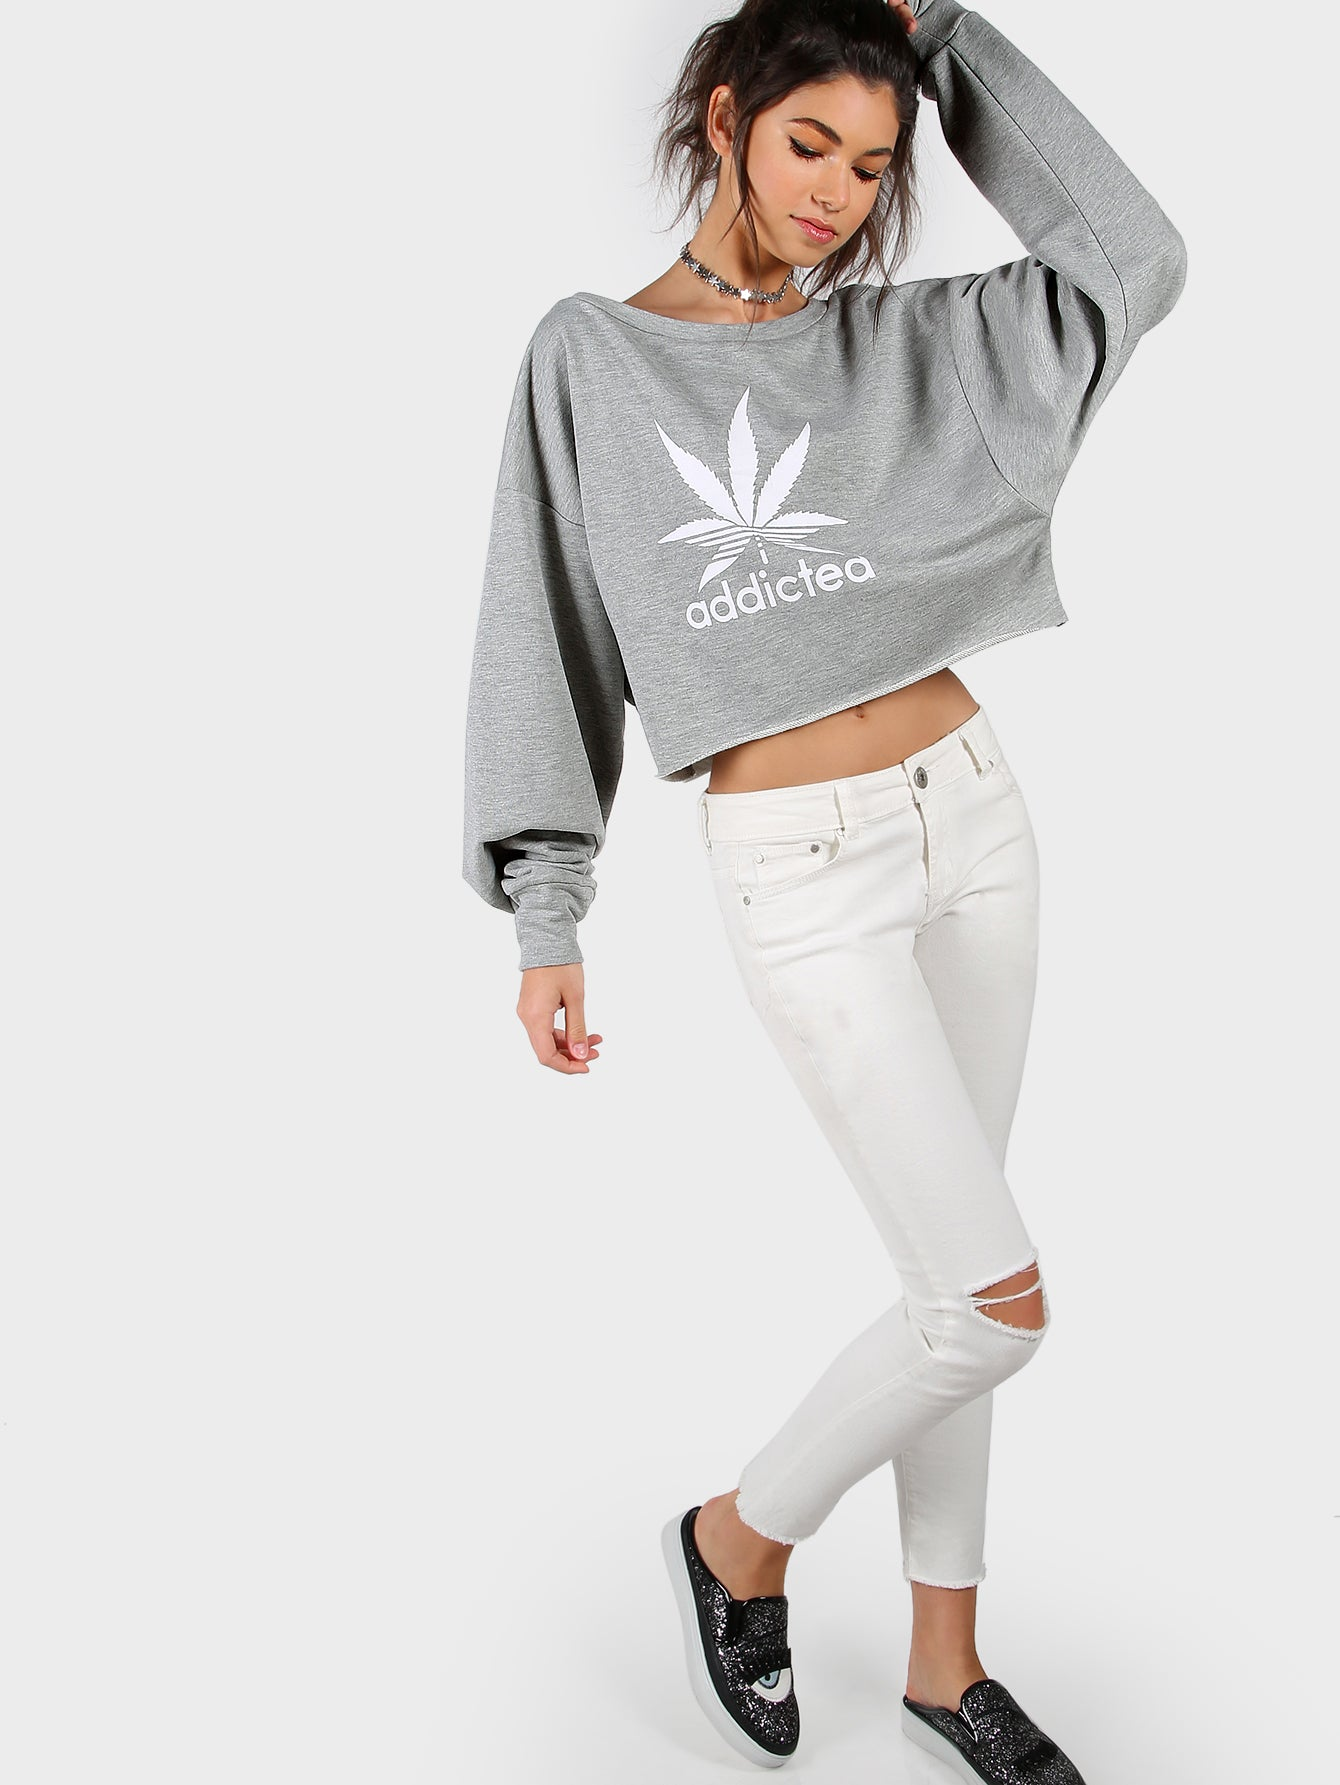 Heather Grey Graphic top